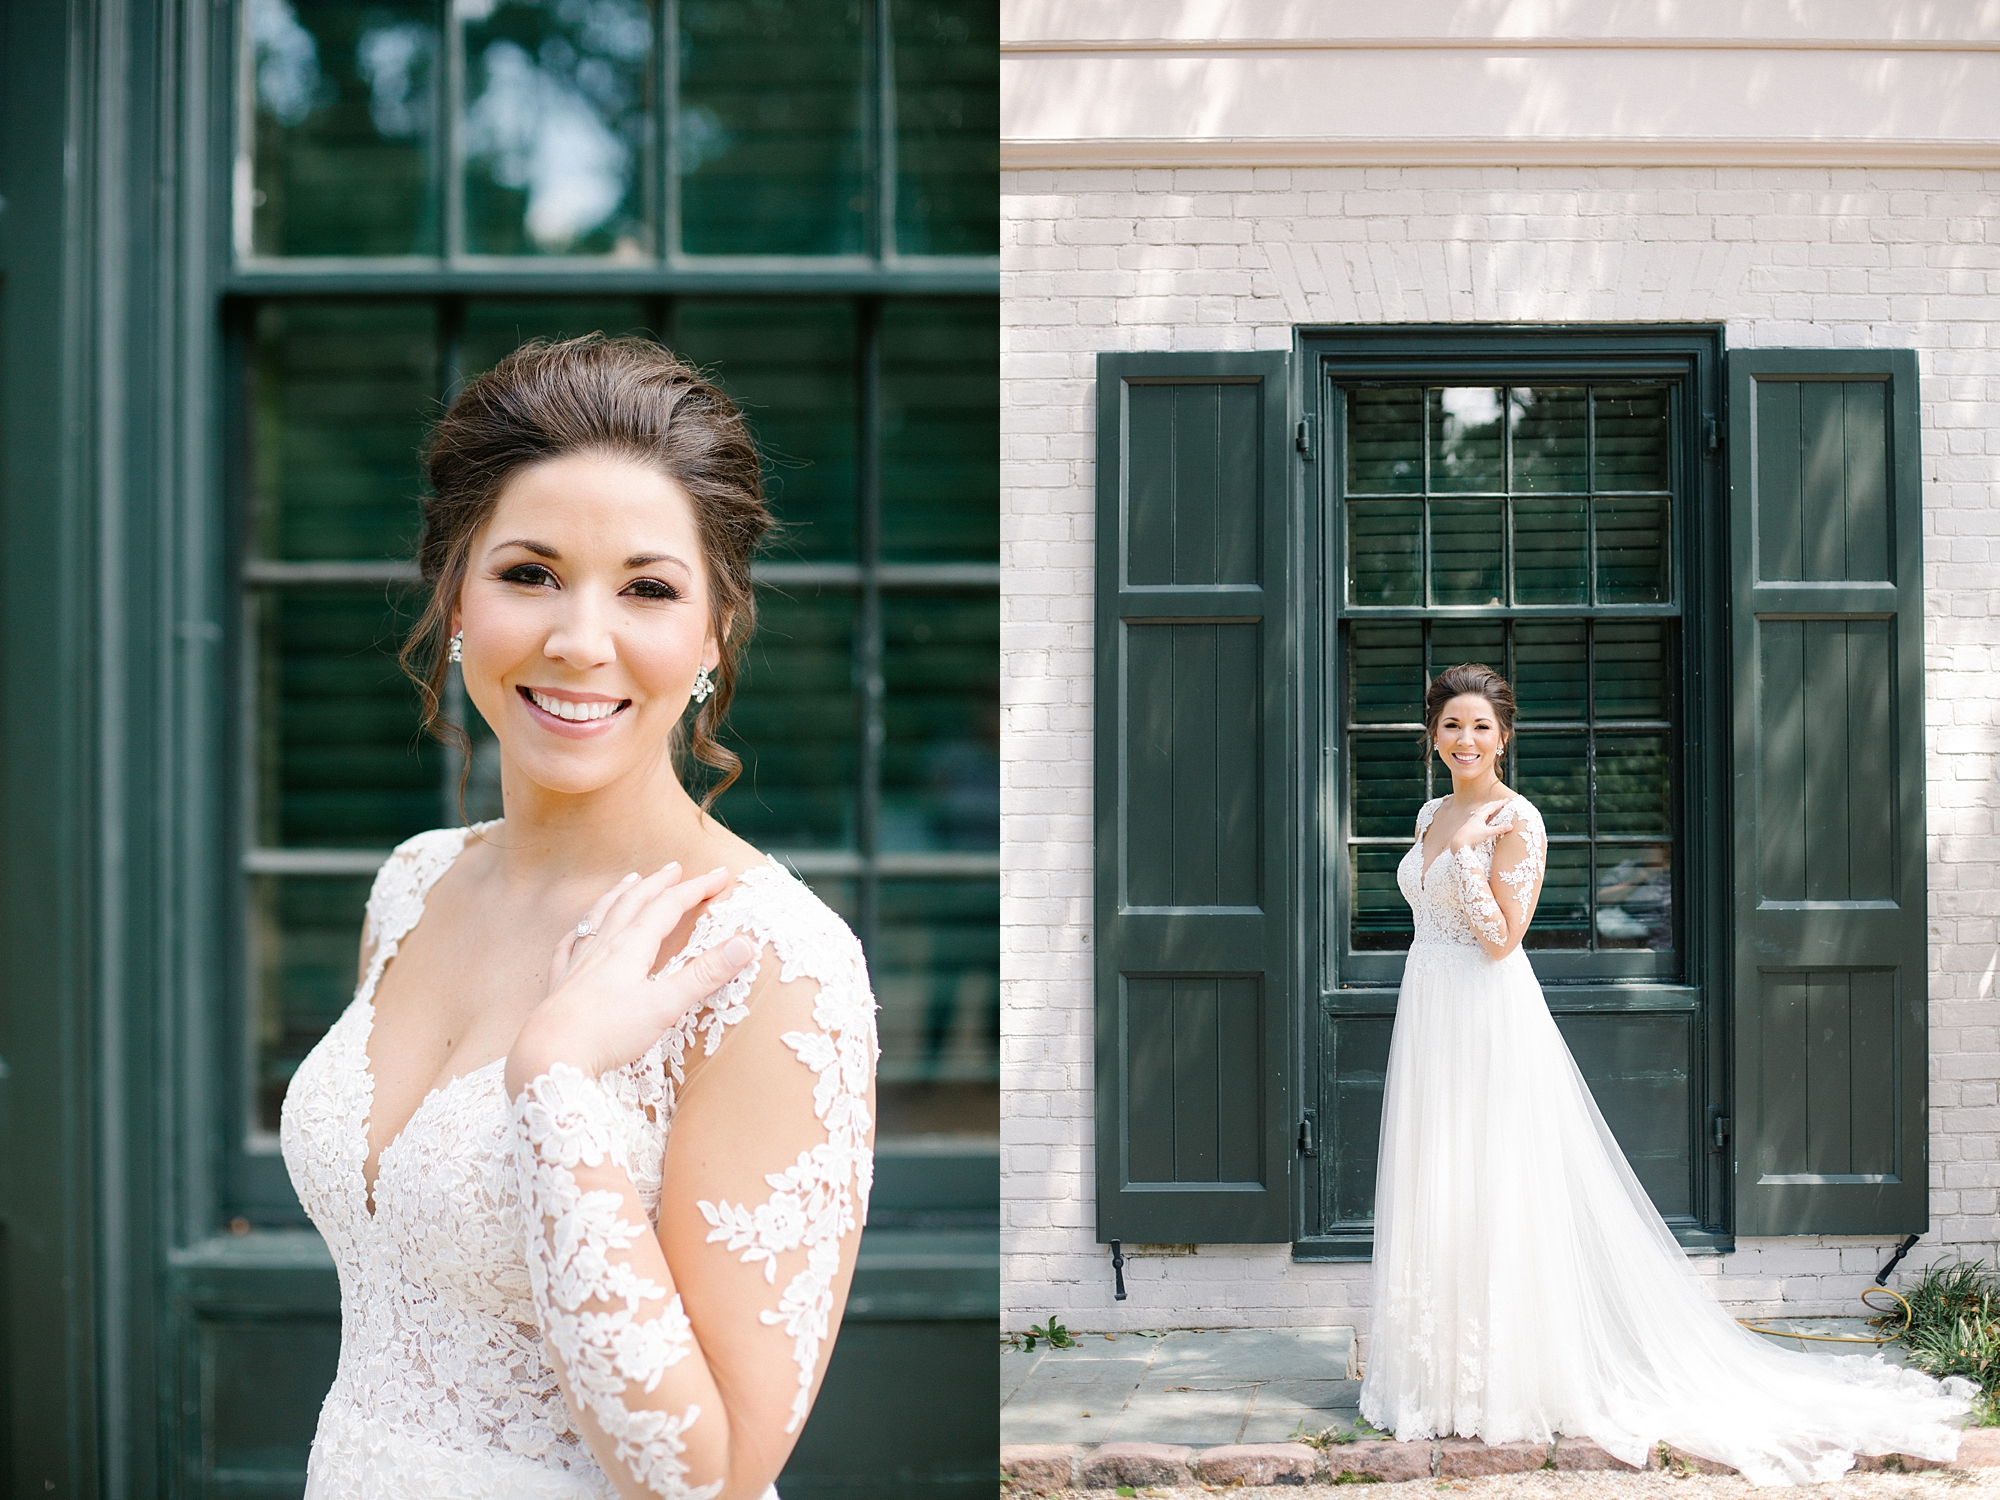 New_Orleans_Wedding_Photographer_0001-1.jpg